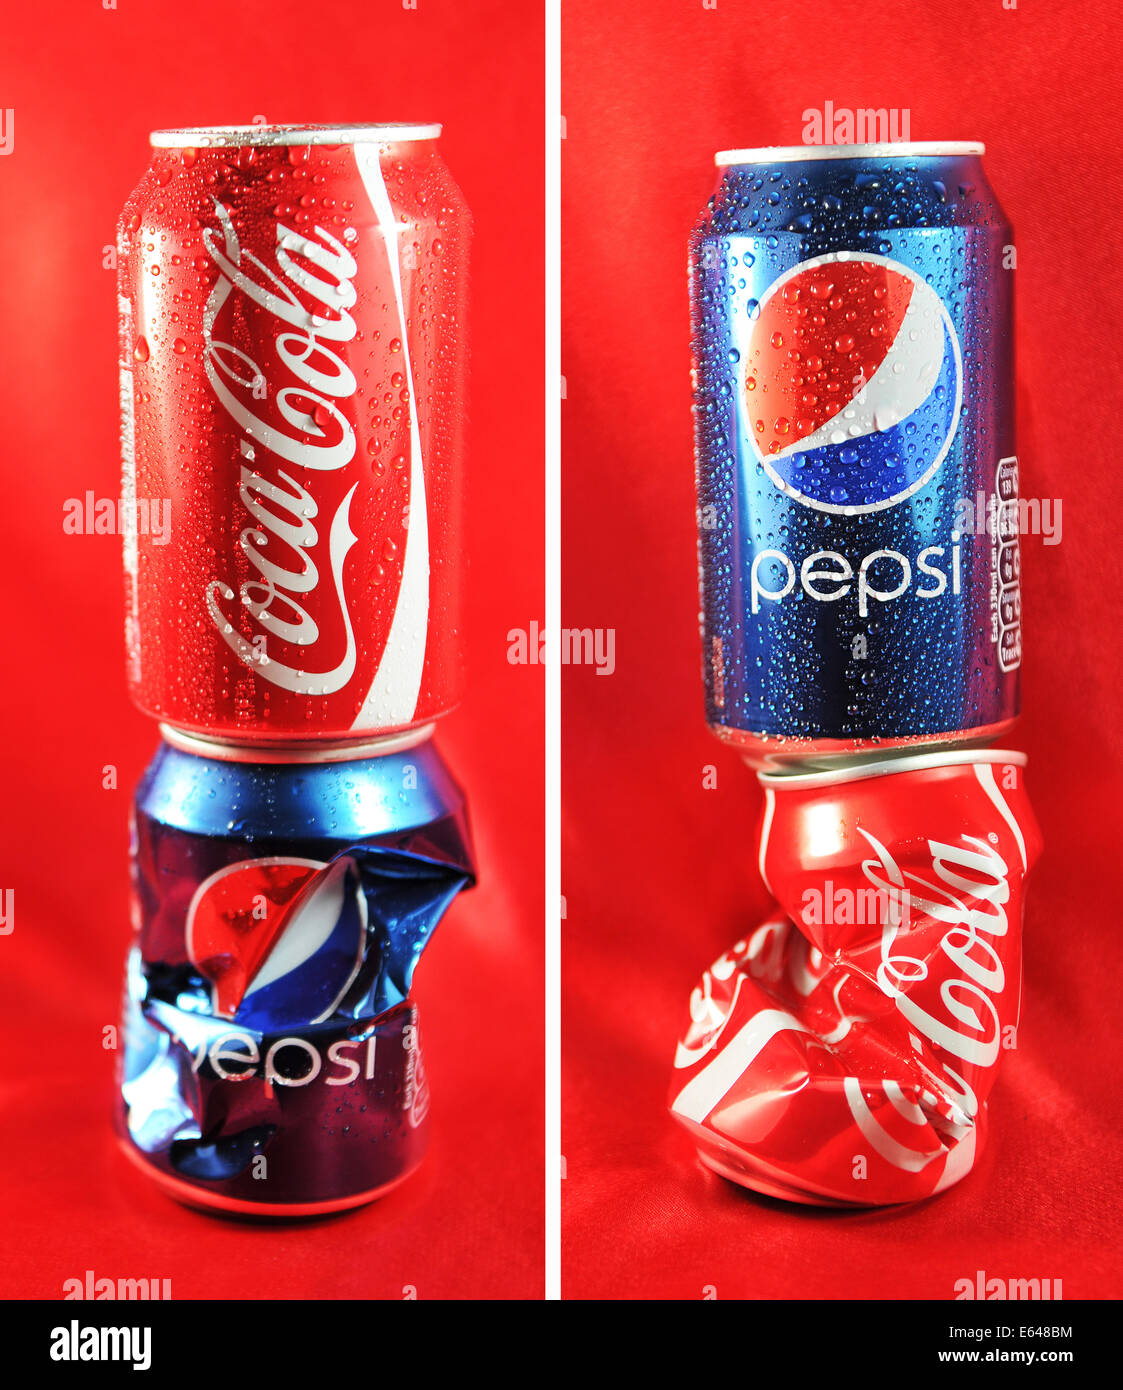 LONDON, UK - FEBRUARY 27, 2011: Coca Cola vs. Pepsi competition concept with cans against red background -illustrative - Stock Image